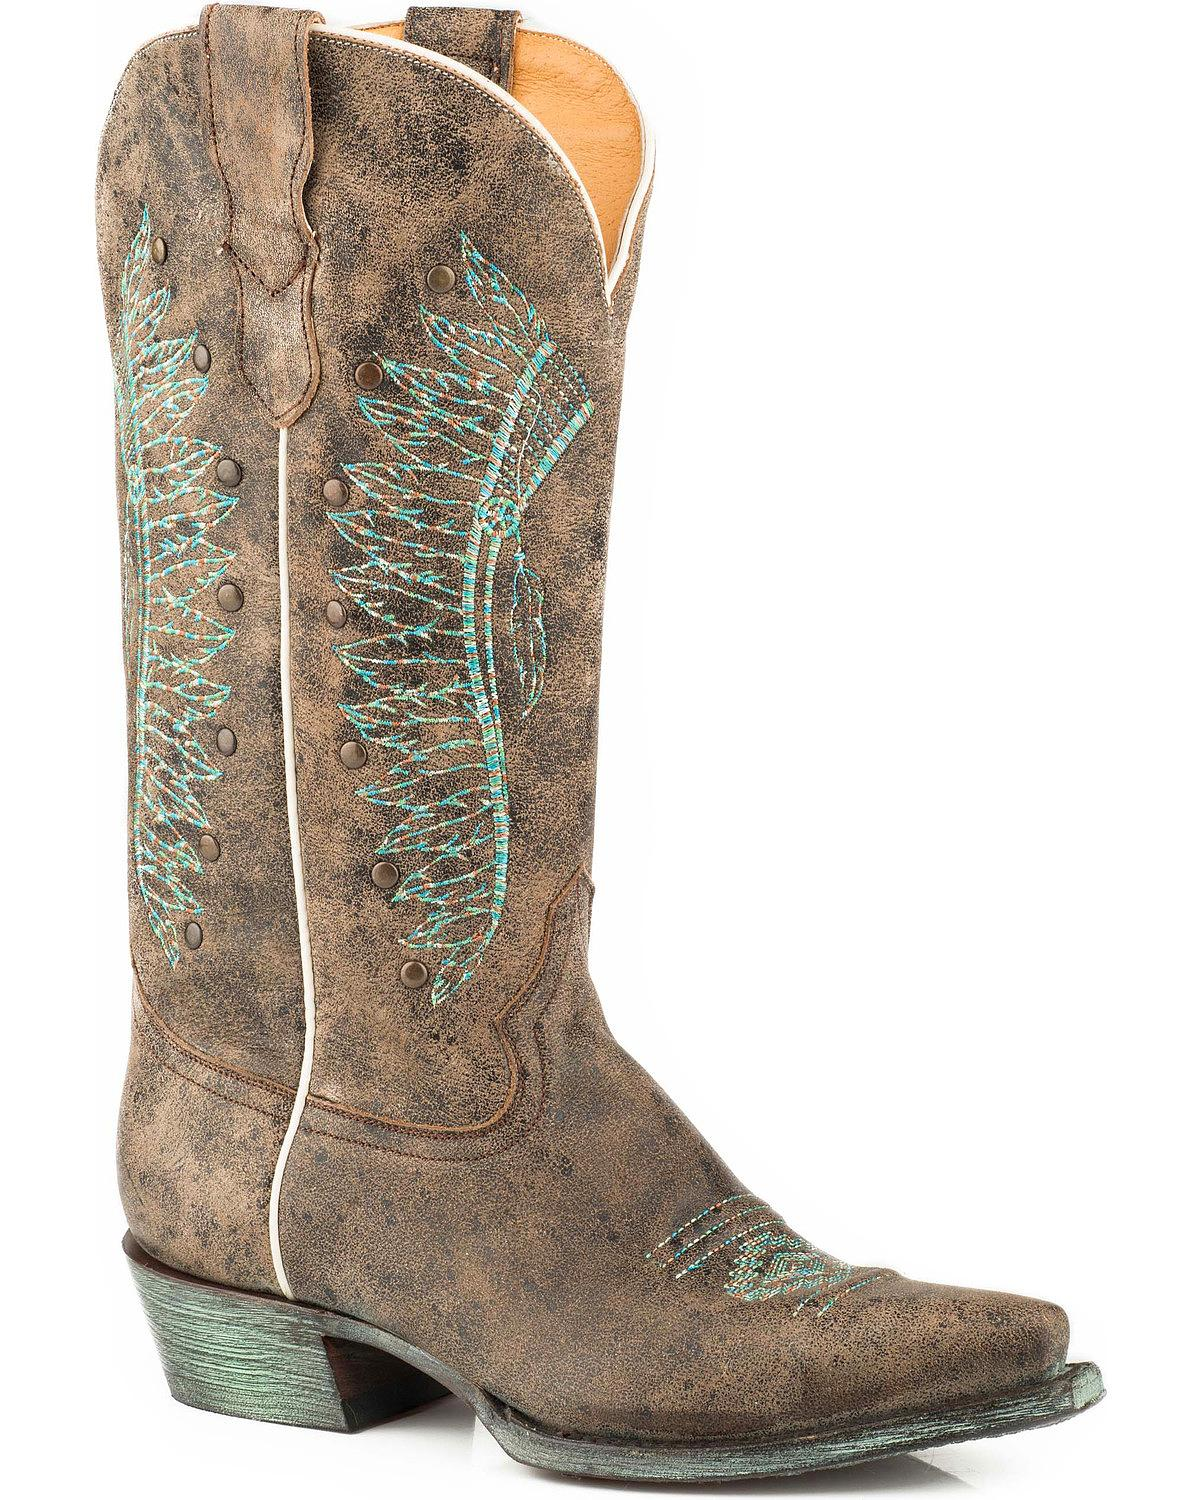 Roper Women's Chiefs Leather Boot Snip Toe - 09-021-7622-1429 Br